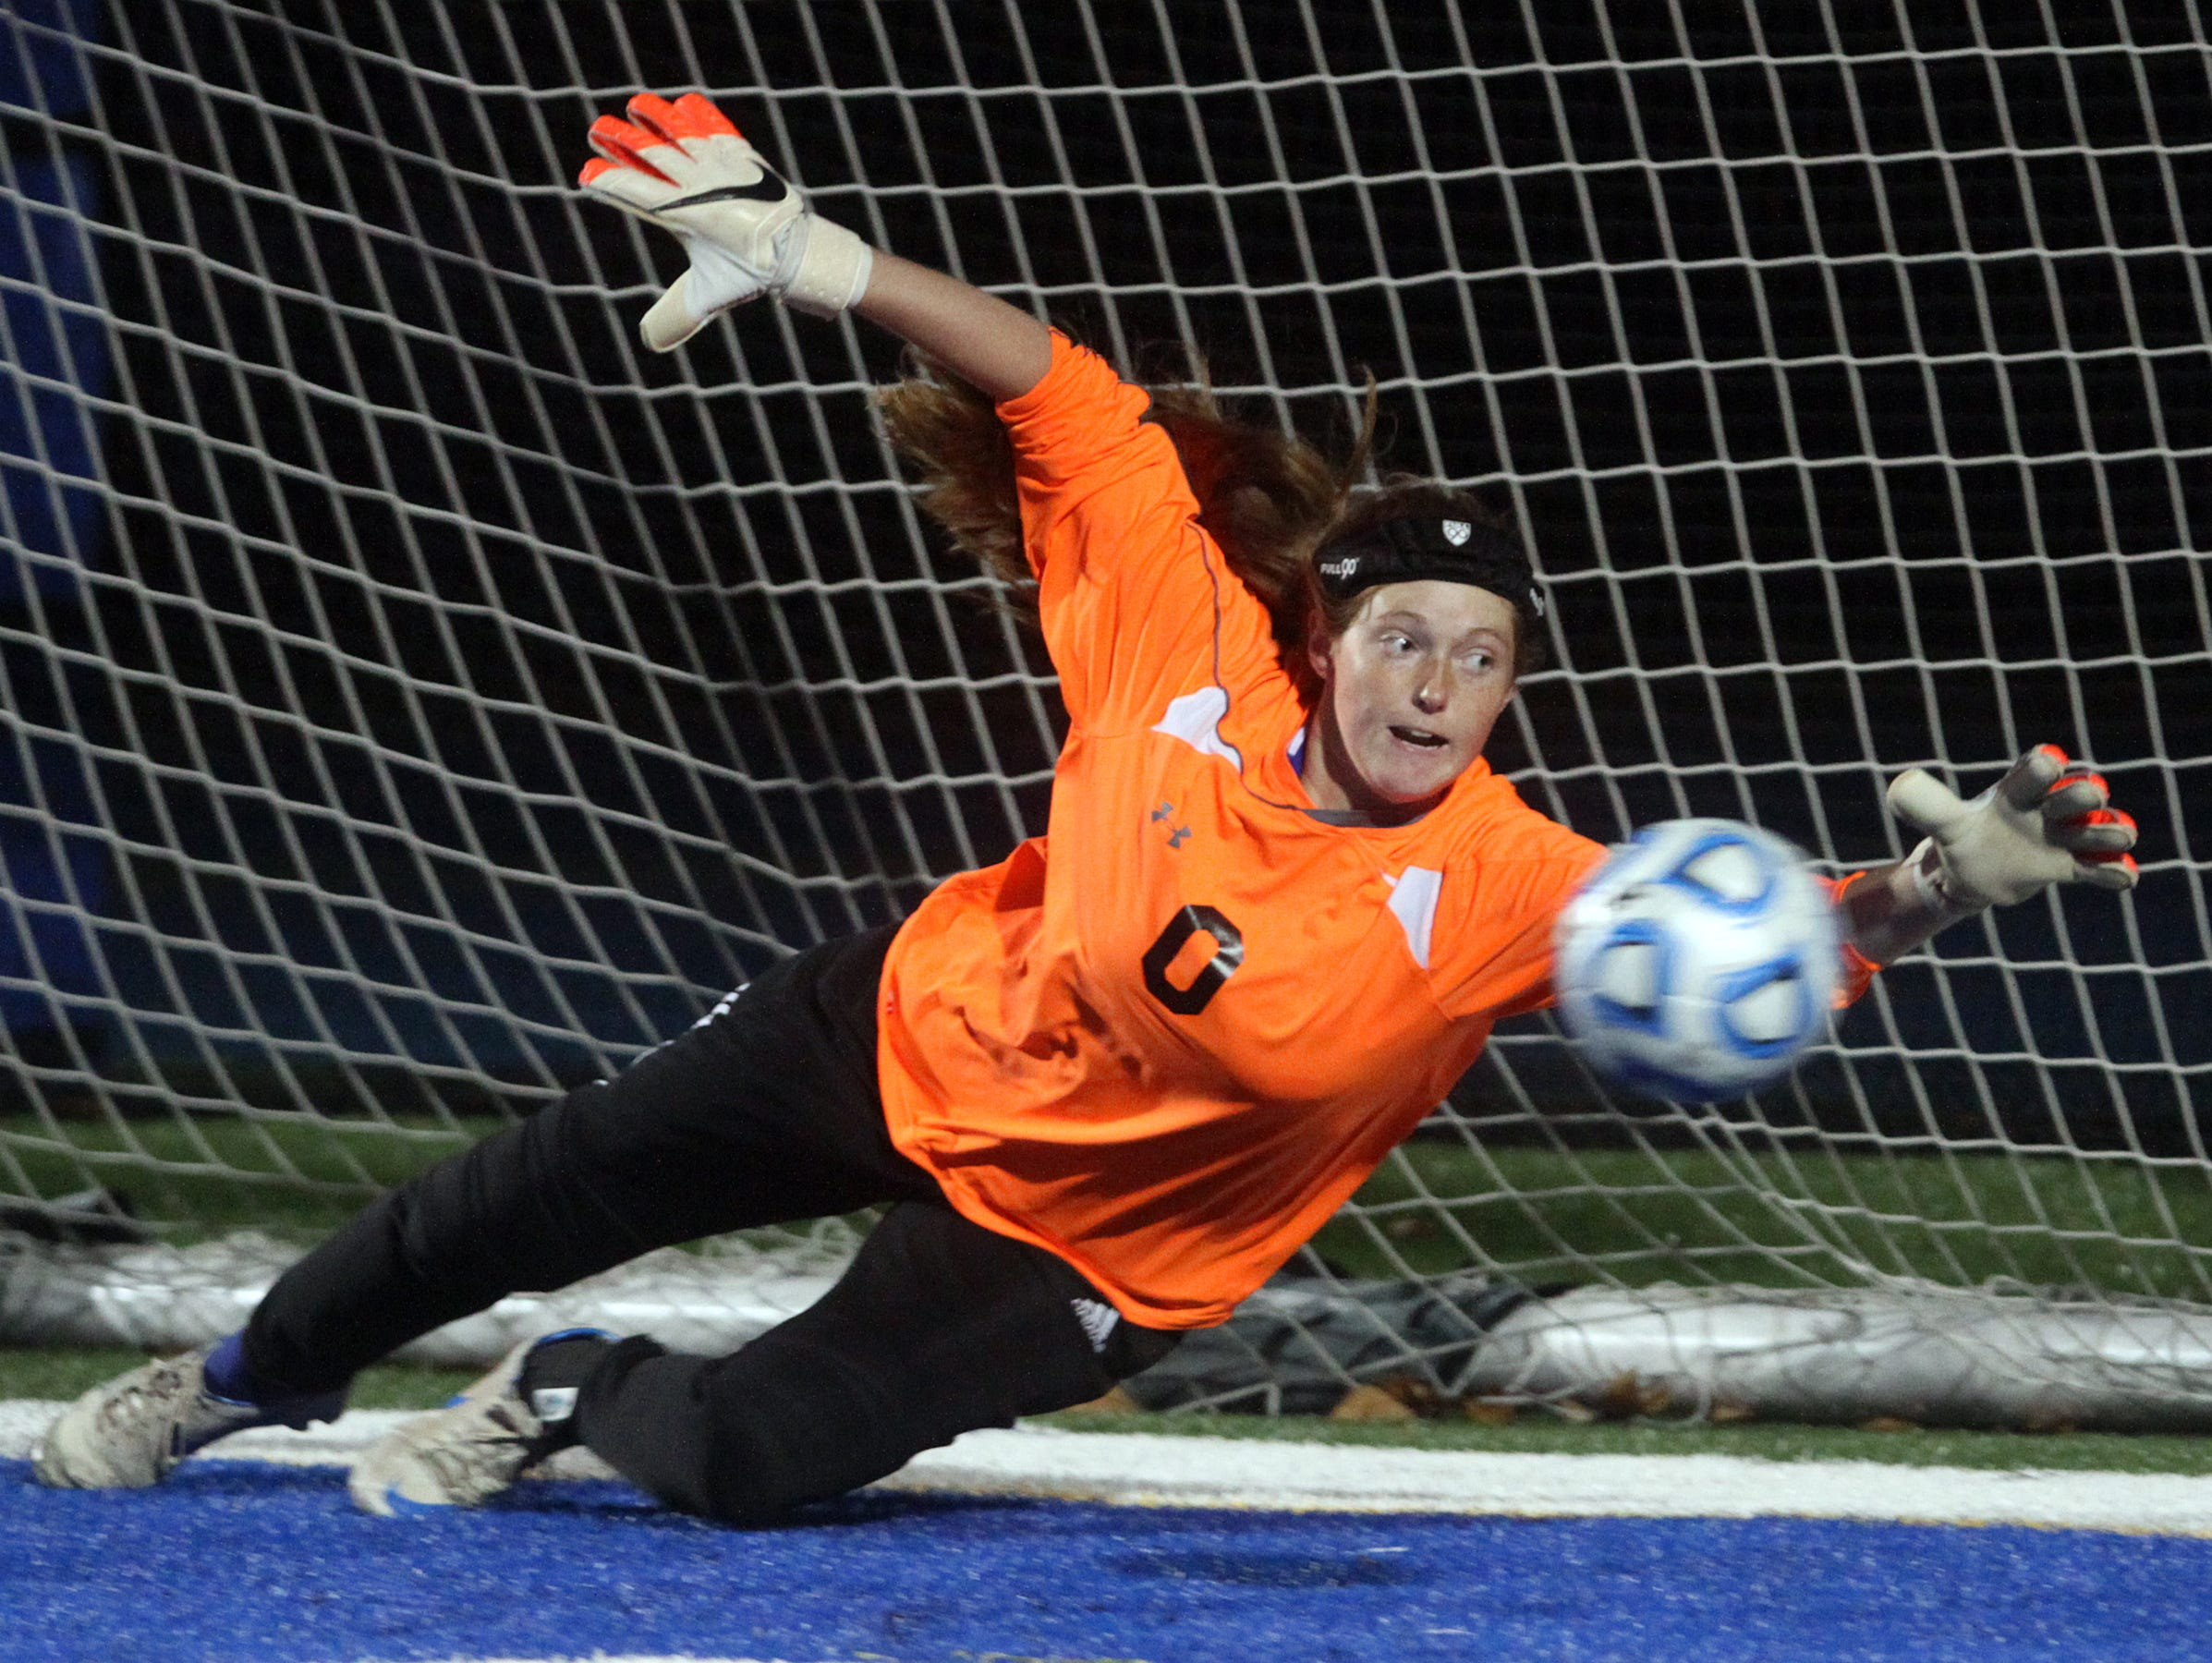 A penalty kick by Shore Regional's Frankie McDonough gets past Metuchen goalie Emily Buchanan in the Central Group I girls soccer sectional final, Thursday, November 12, 2015, in West Long Branch.